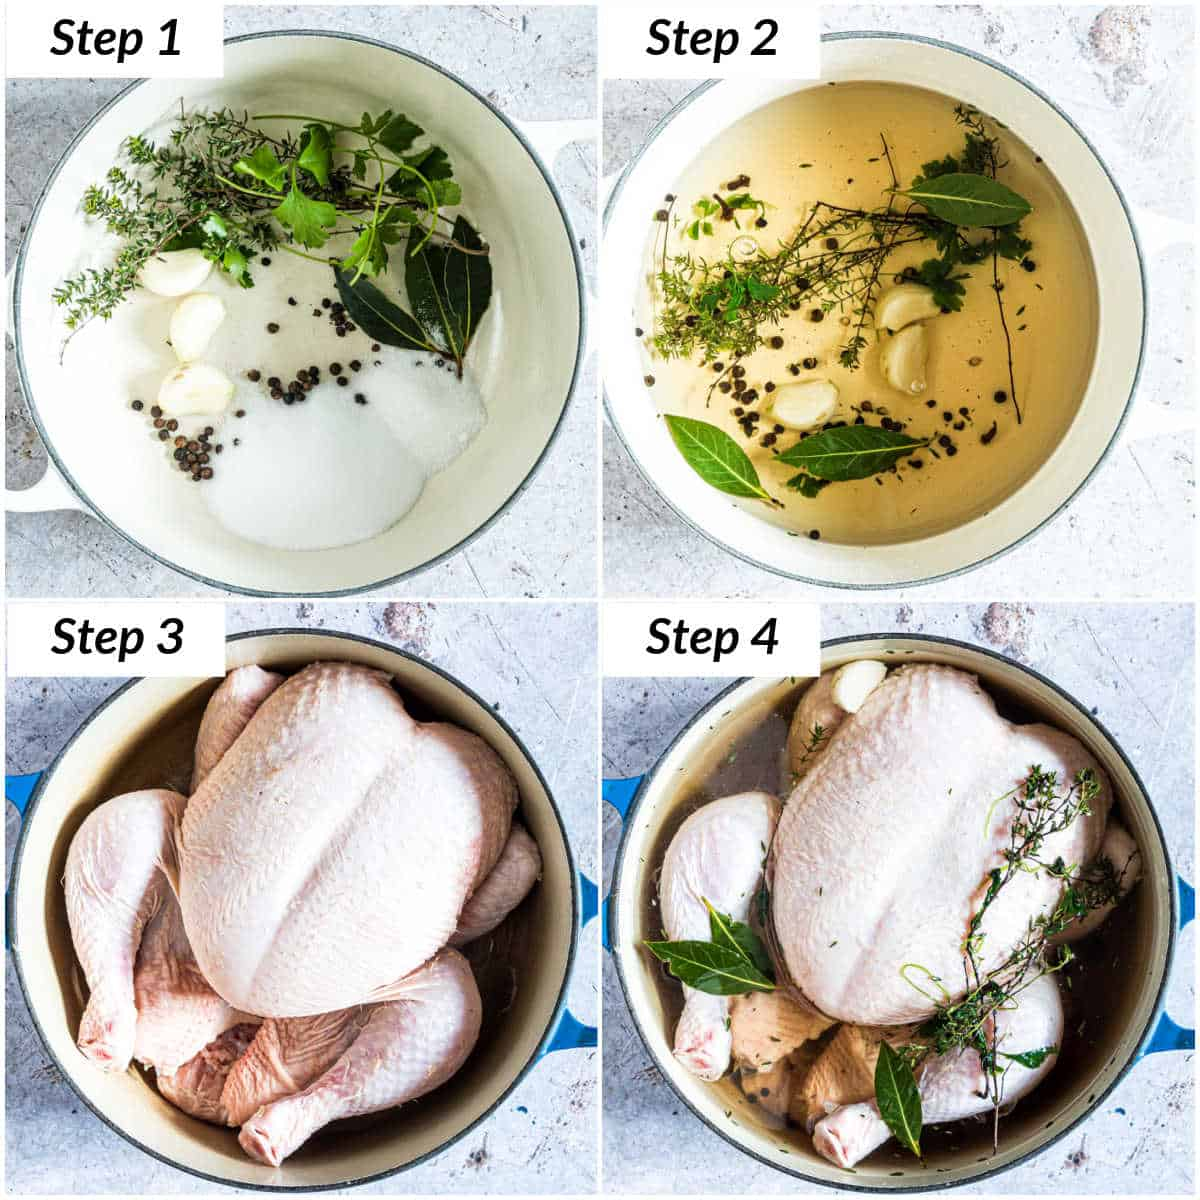 image collage showing the steps to brine chicken